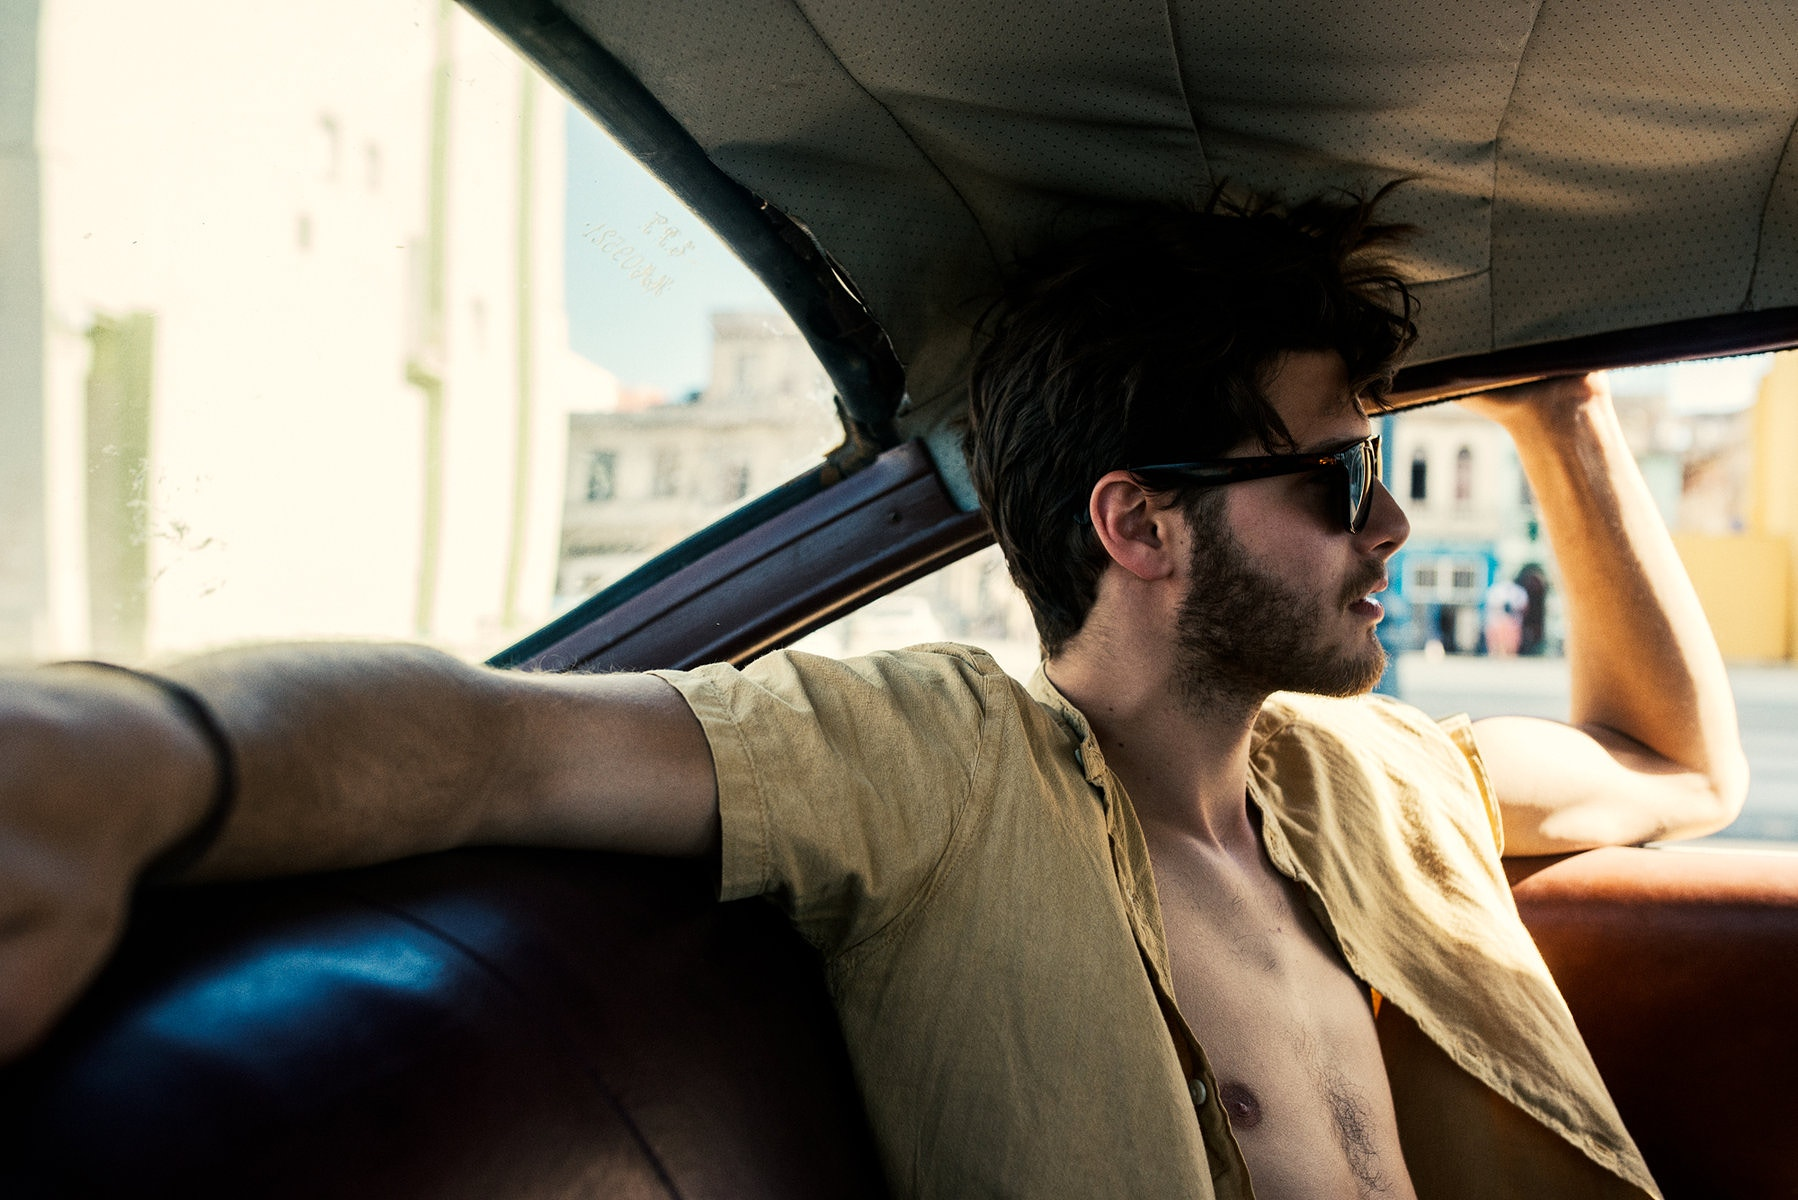 matthew-jones-lifestyle-eyewear-shot-in-havana-cuba-2029822-2278326.jpg